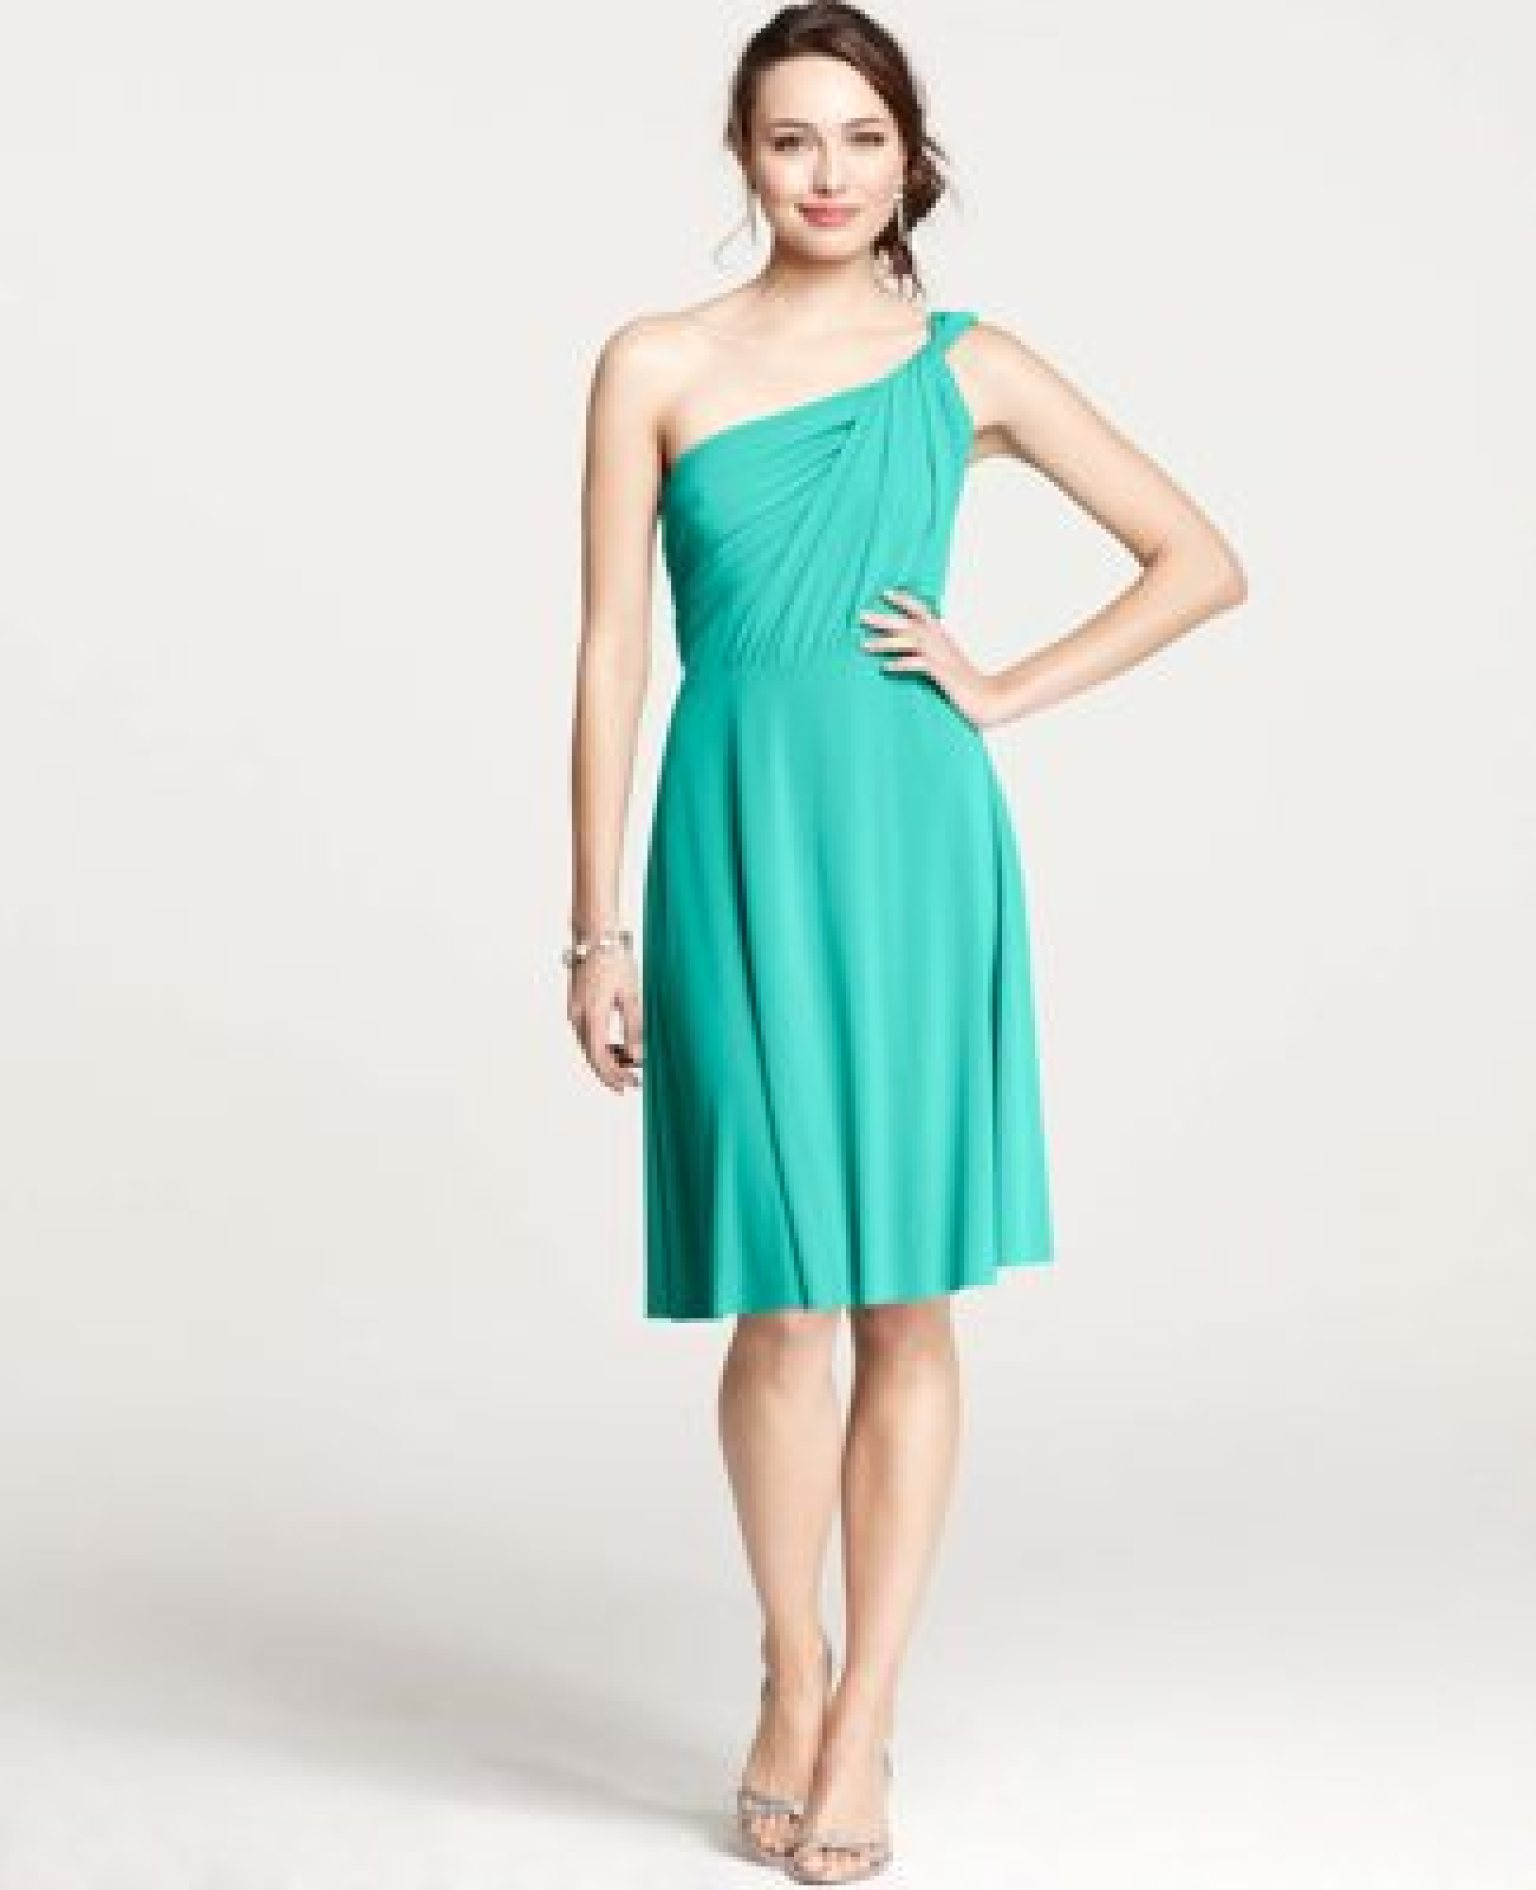 Wedding guest dresses for summer affairs photos huffpost for Wedding dress outfits for guests